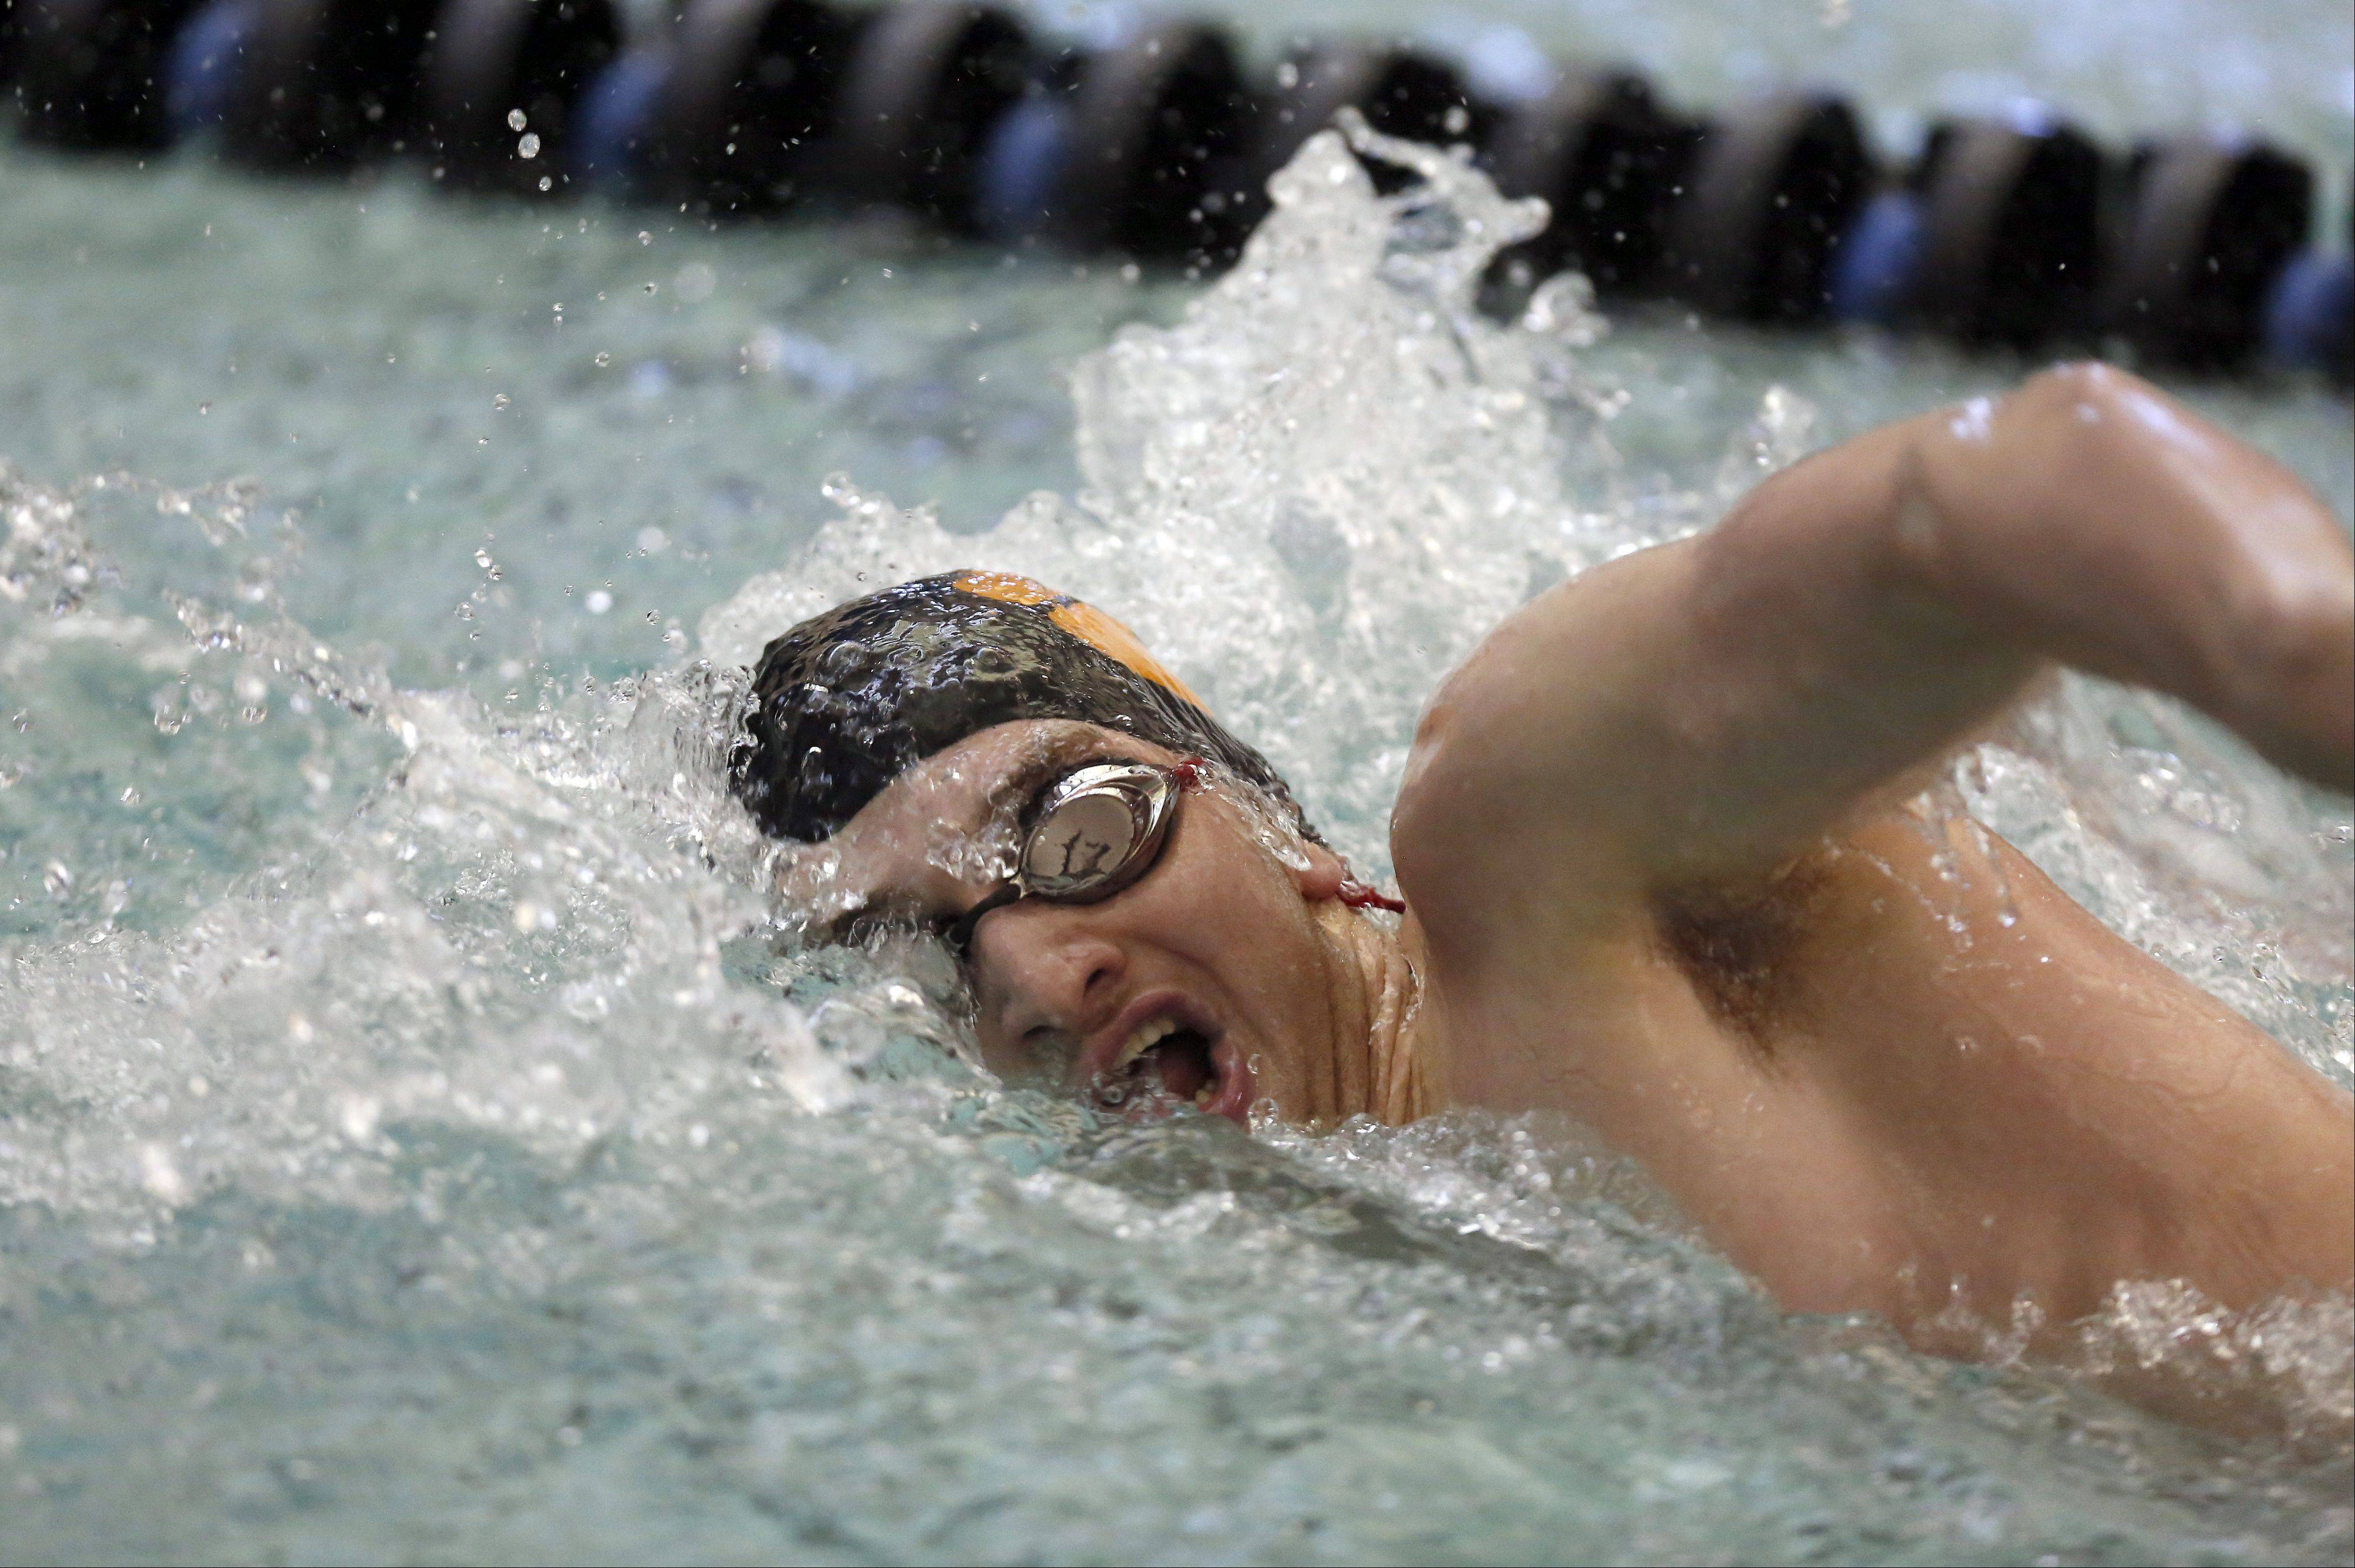 LIbertyville's Pat King swims in the 200 yard freestyle during St. Charles North 12th Annual Varsity swimming invite Saturday in St. Charles.